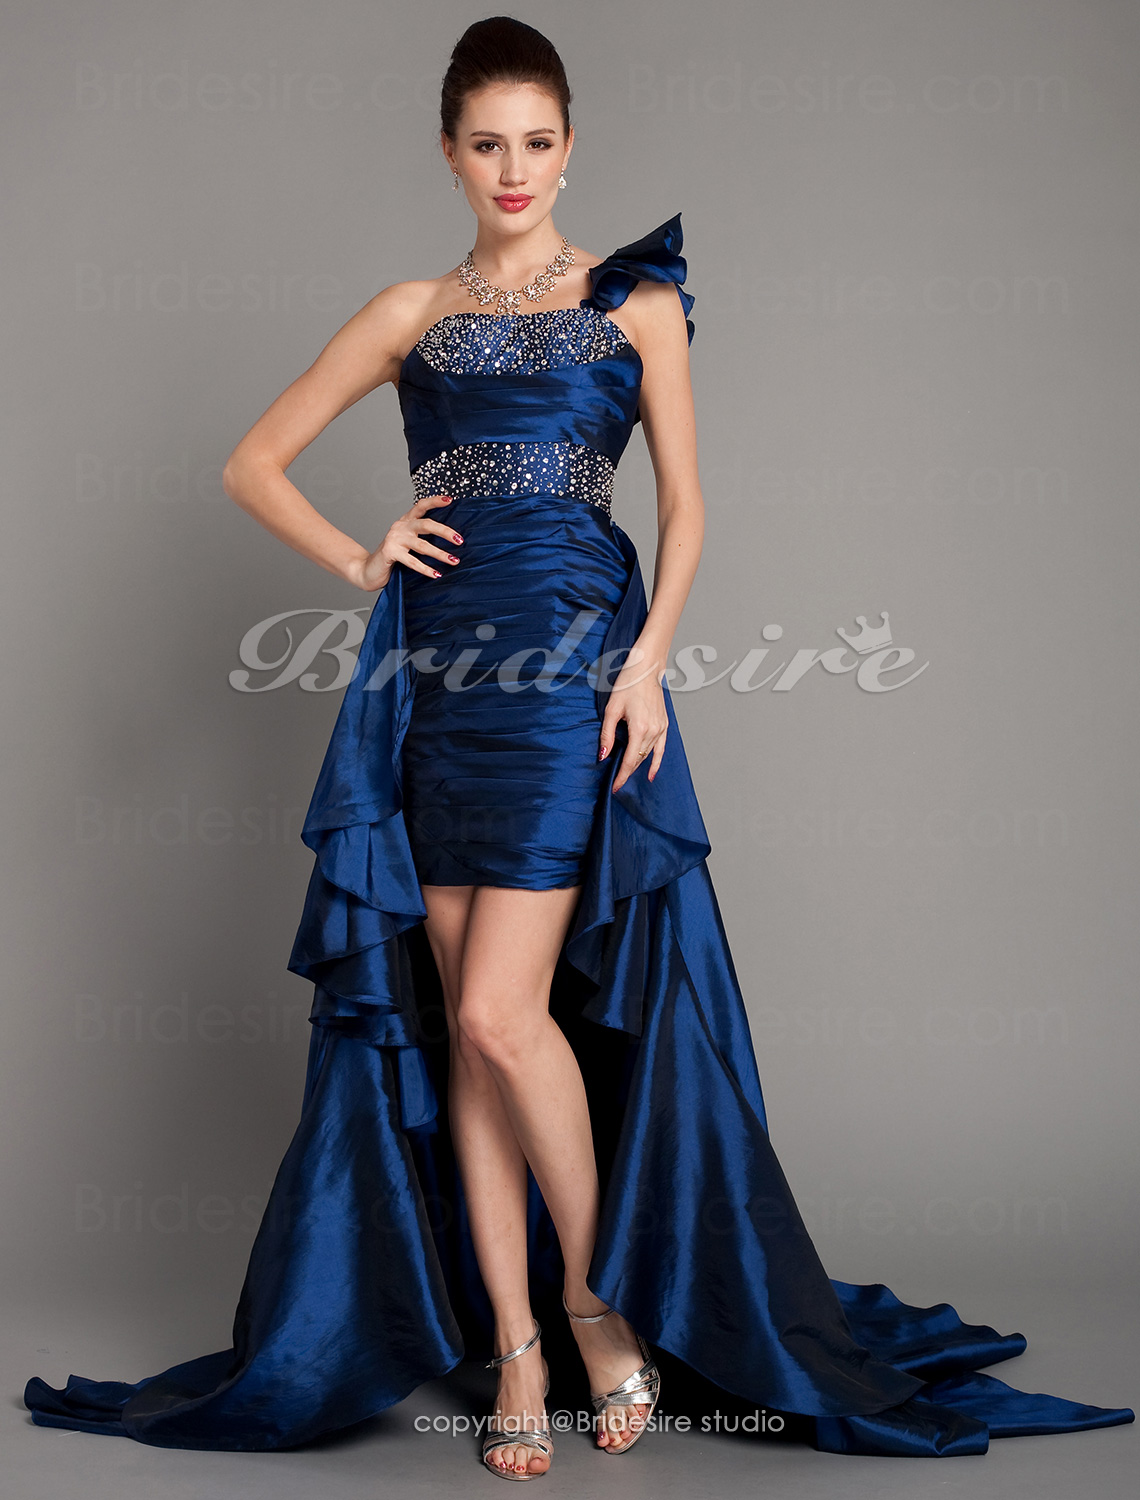 Sheath/Column Taffeta One Shoulder Sweep/Brush Train Cocktail Dress